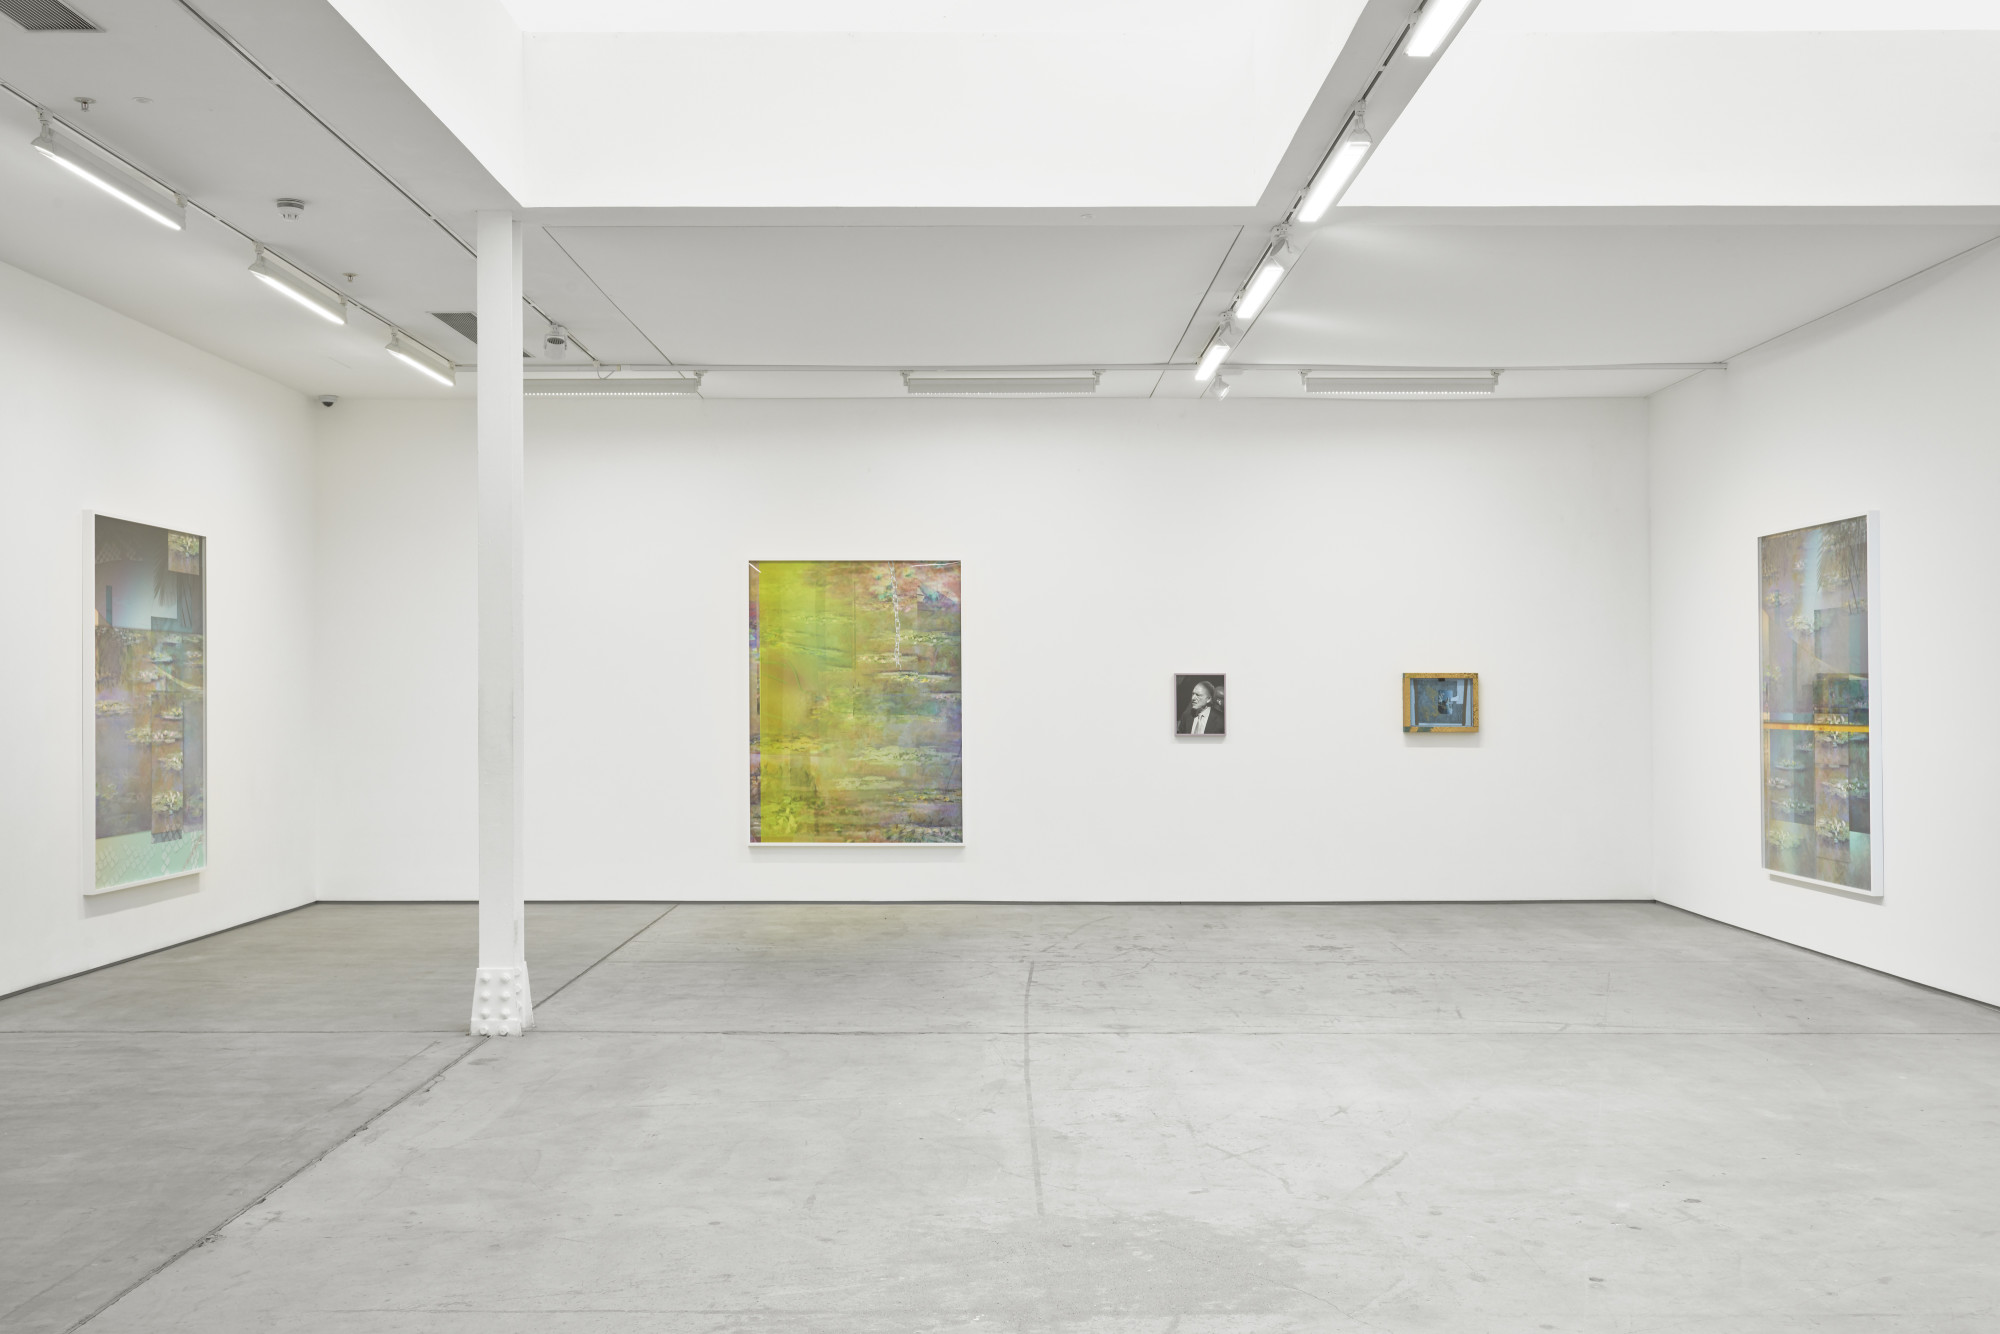 <p>Installation view, 2018</p><p>Photo: Robert Glowacki </p>